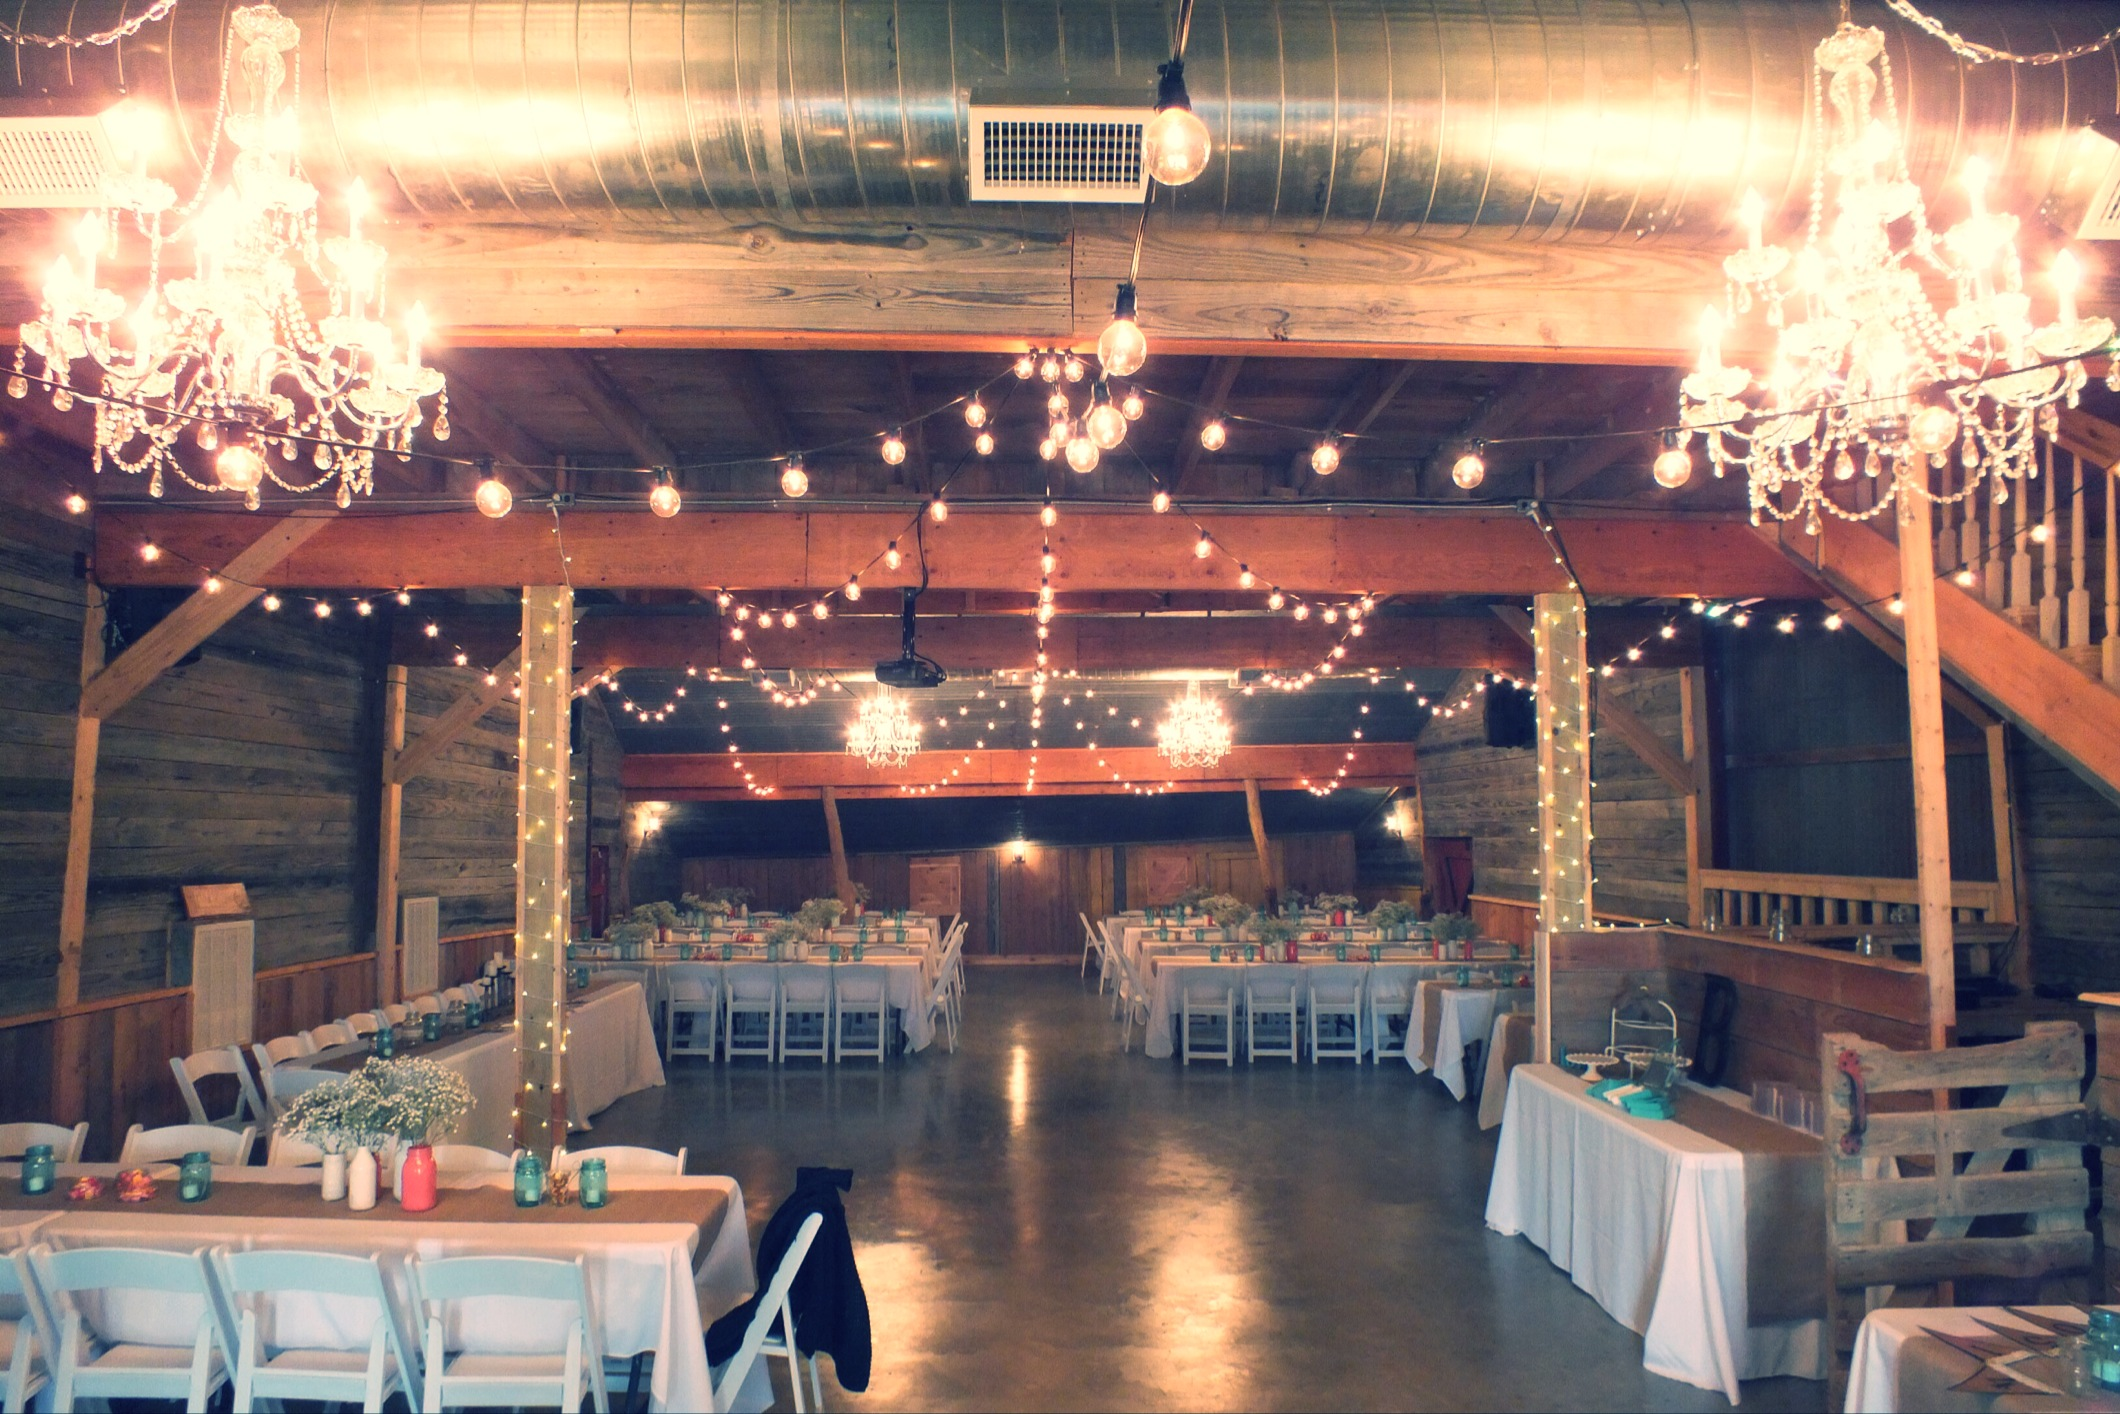 Rustic grace estate barn wedding venue dallas rustic grace estate rustic grace estate barn wedding venue dallas junglespirit Image collections